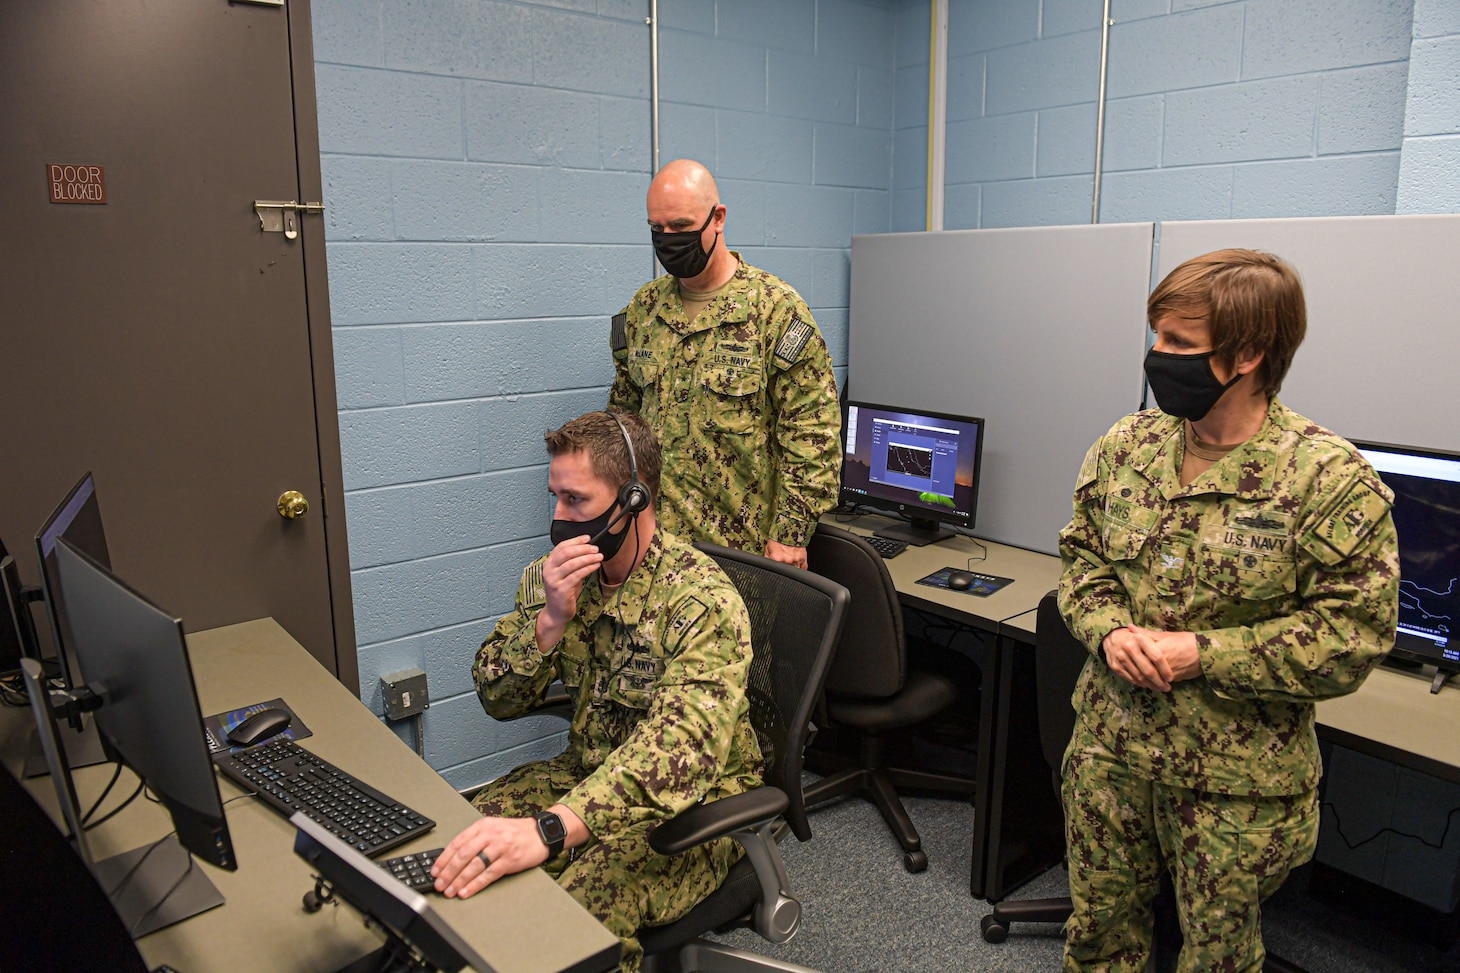 Rear Adm. Brendan McLane, commander, Naval Surface Force Atlantic, tours the new Air Intercept Controller (AIC) training lab with Senior Chief Operations Specialist Adam Siler, Afloat Training Group (ATG) Norfolk�s AIC supervisor and Capt. Mary Hays, ATG Norfolk�s commanding officer. Along with training AICs, the lab will also open training events to shipboard anti-air warfare coordinators (AAWC) to promote AIC/AAWC integration. (U.S. Navy photo by Mass Communication Specialist 2nd Class Jacob Milham/RELEASED)